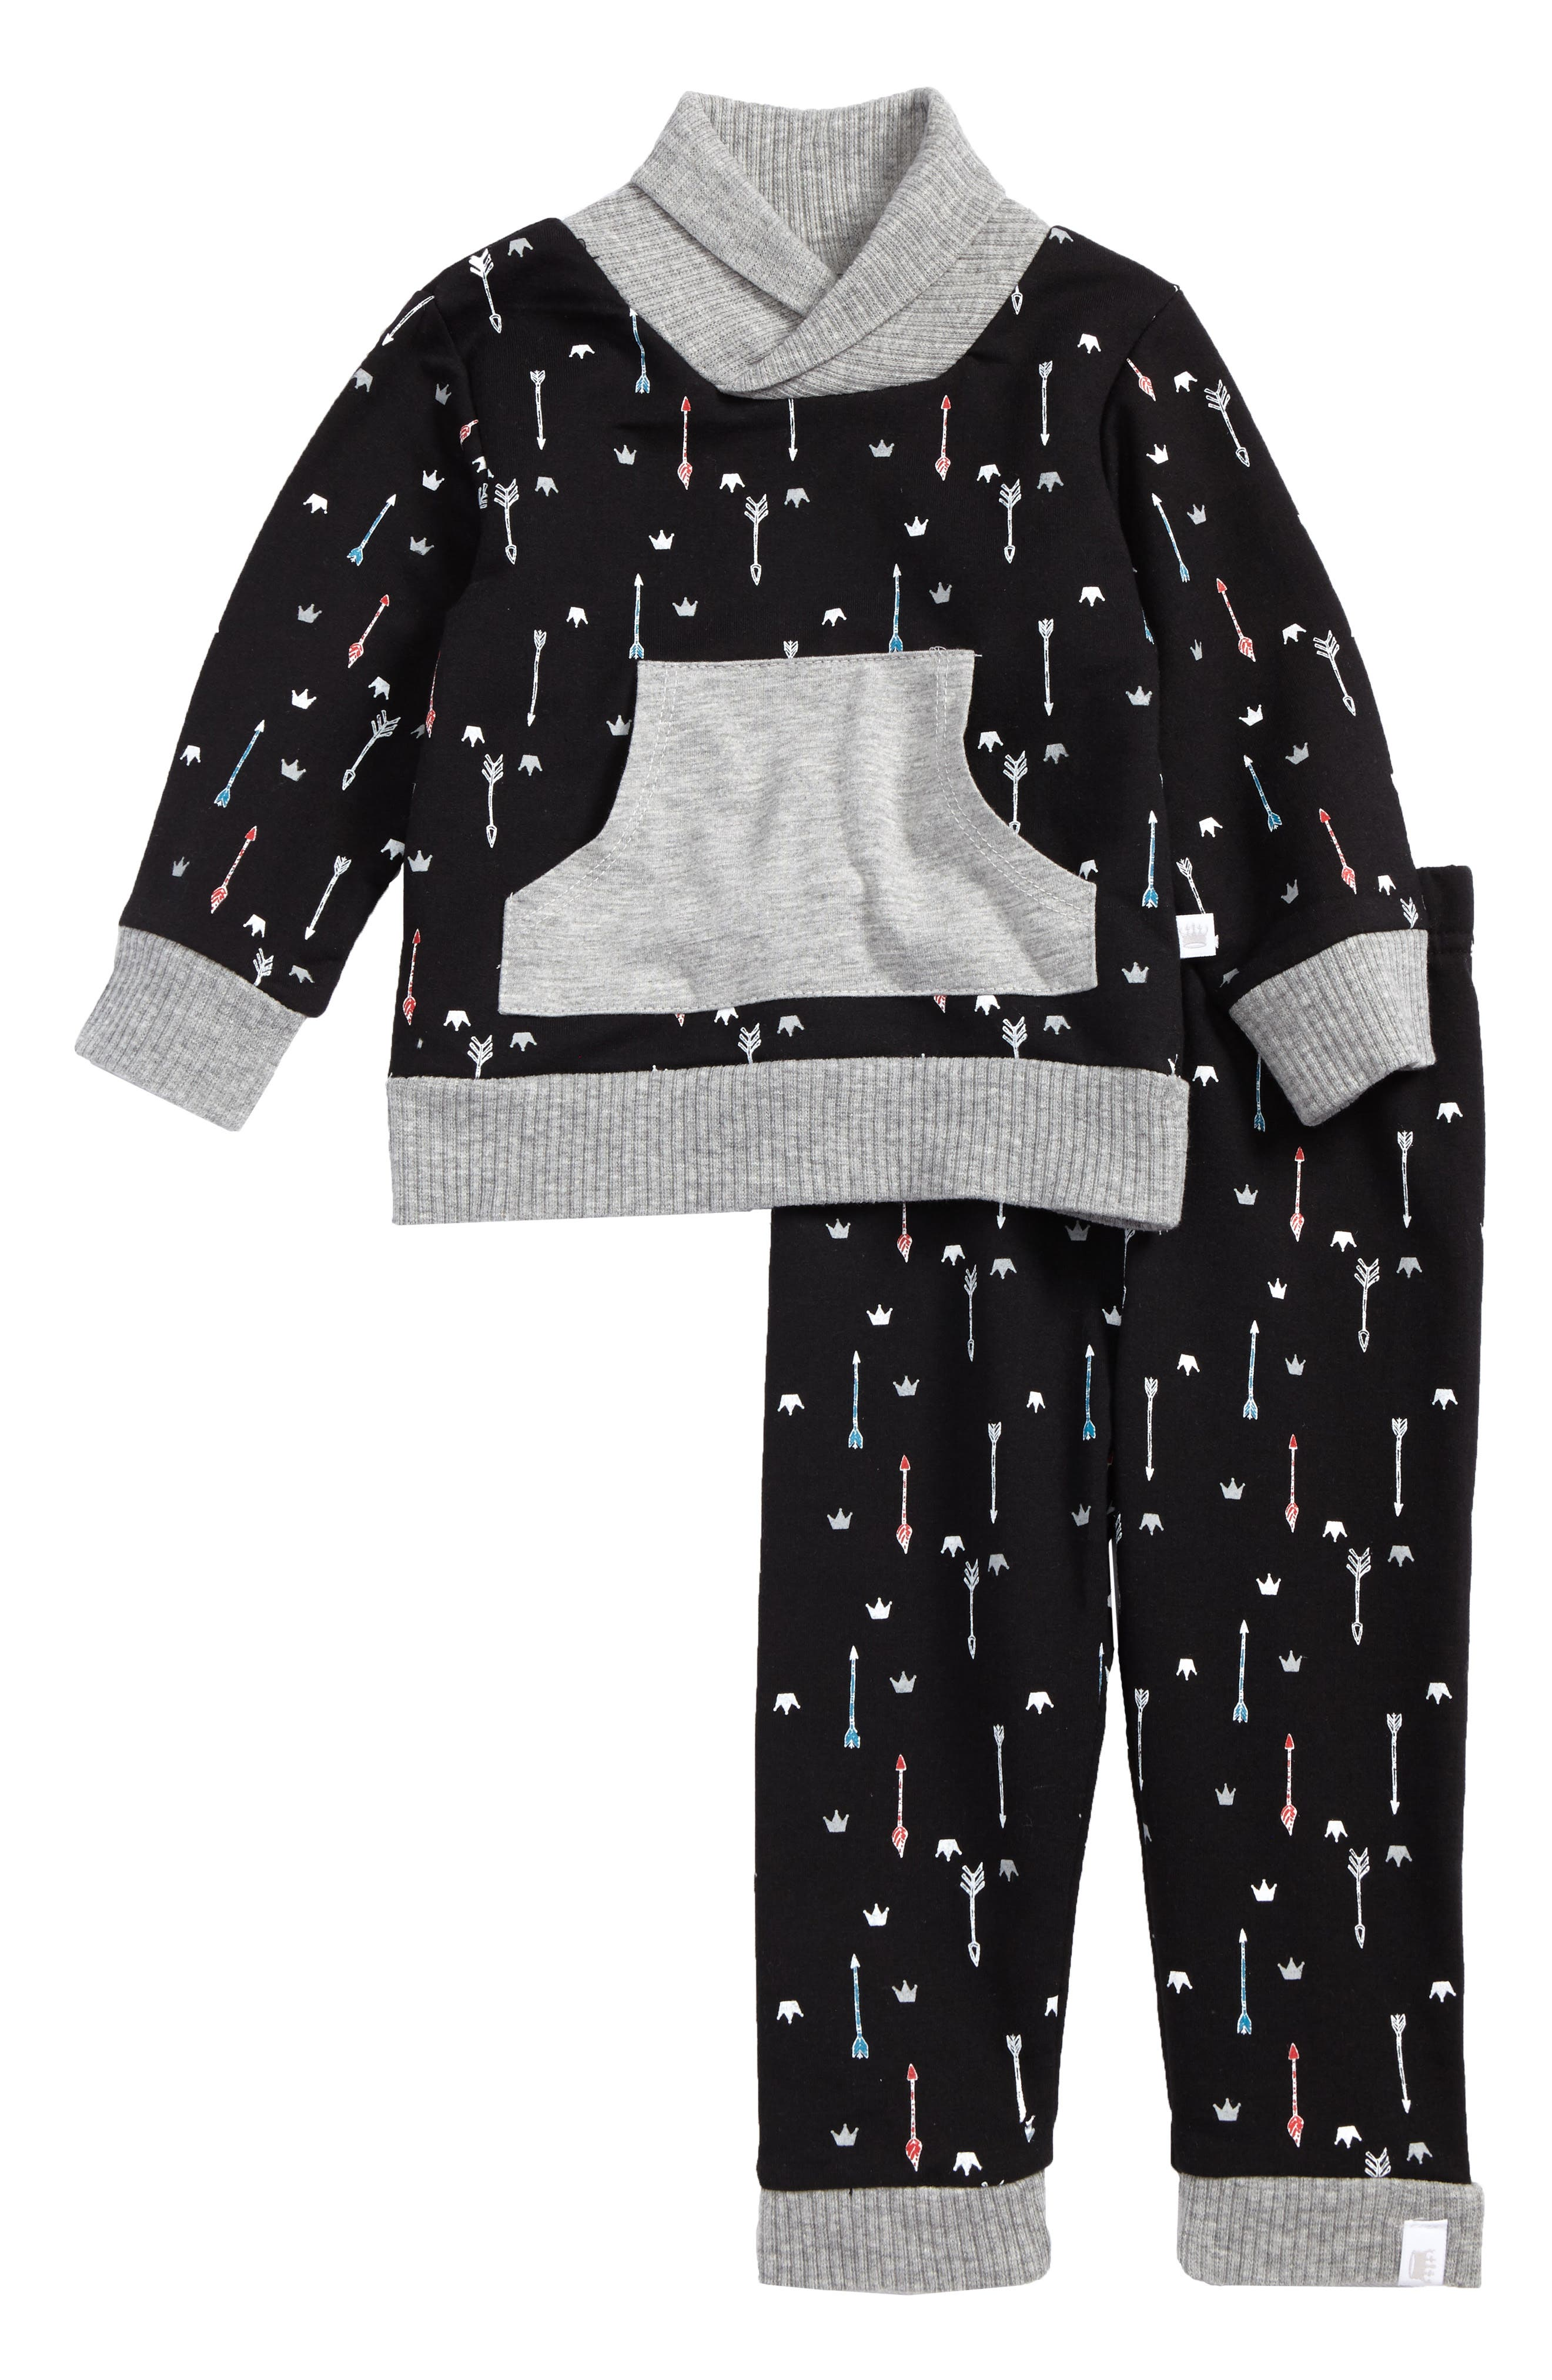 Rosie Pope Shawl Collar Top & Pants Set (Baby Boys)